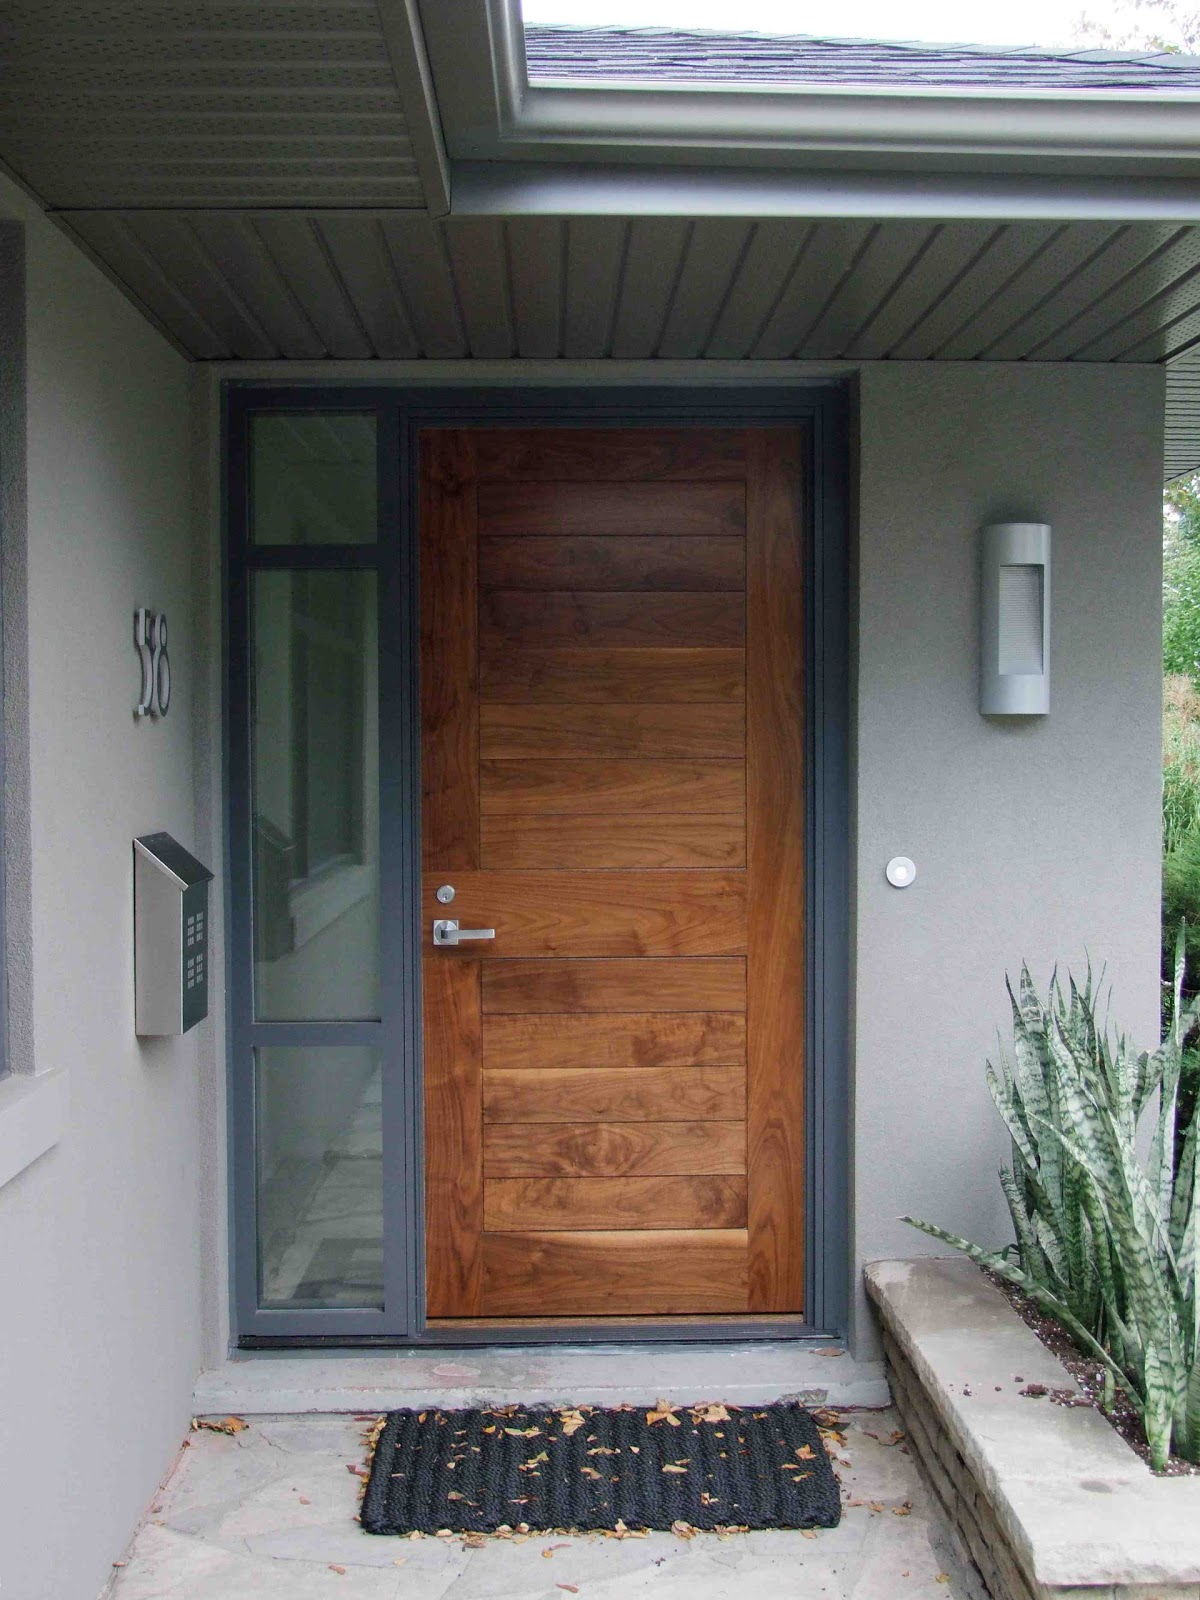 Creed 70 39 s bungalow makes a modern impression for Front entry door ideas